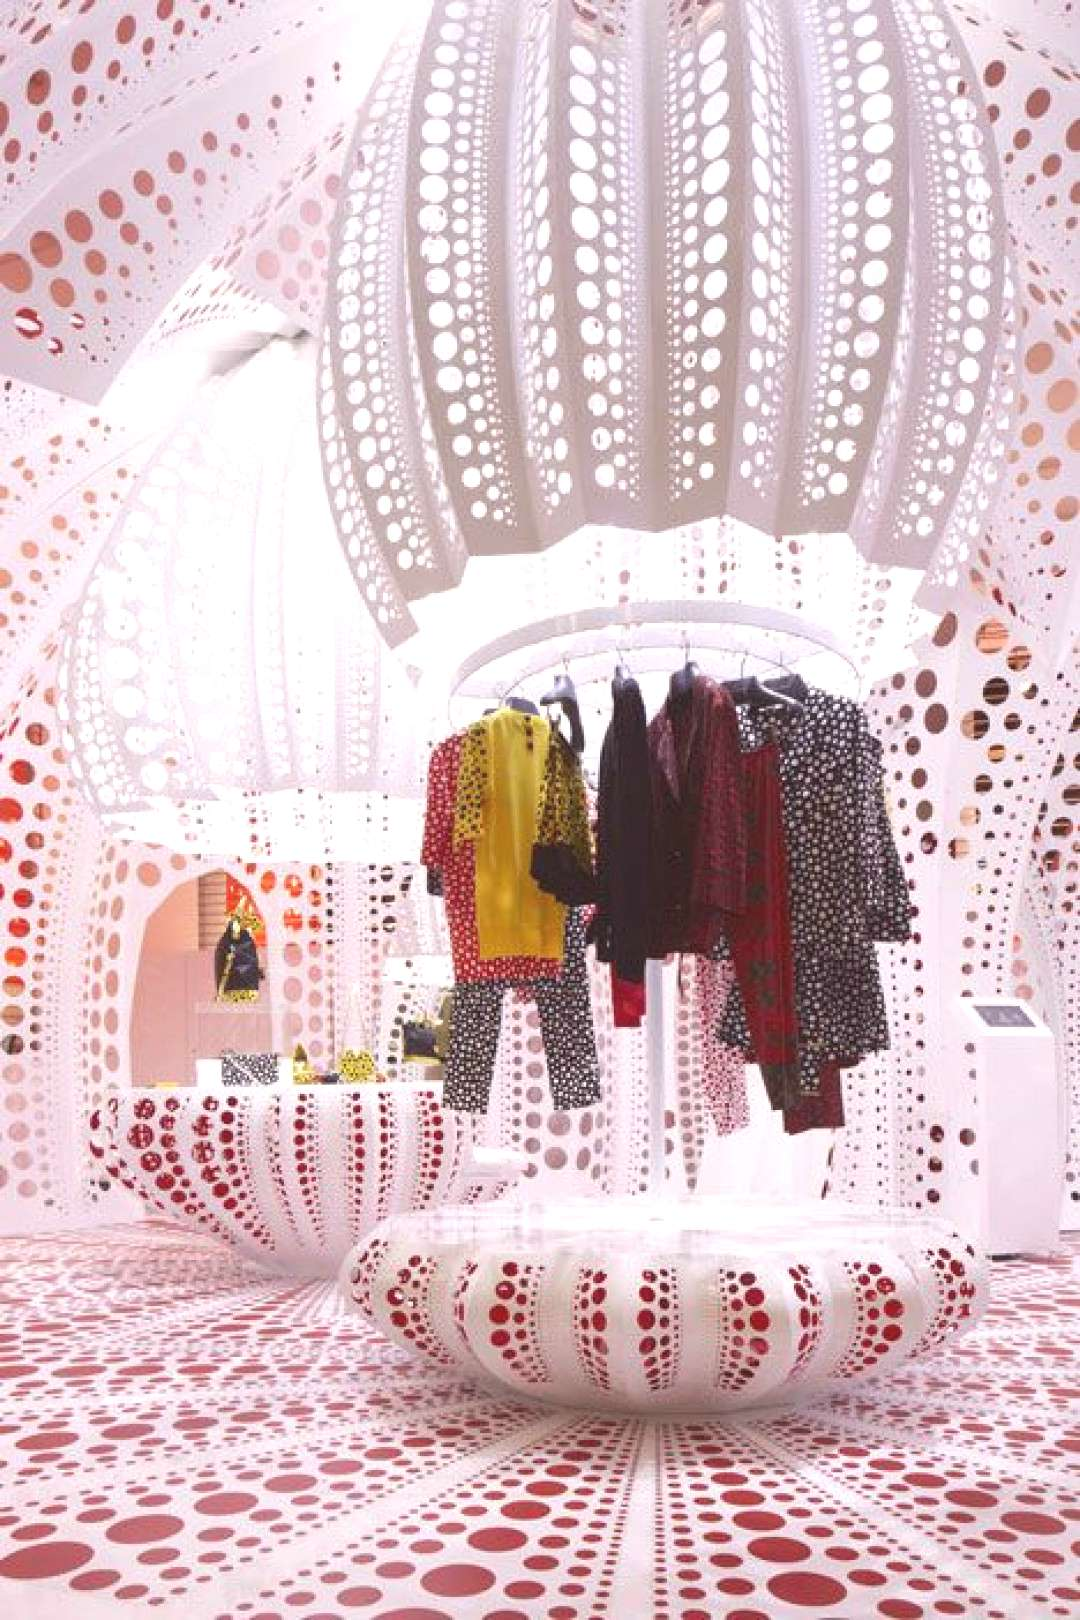 Louis Vuitton and Kusama concept store at Selfridges - Im not big on LV stuff, but I LOVE that the